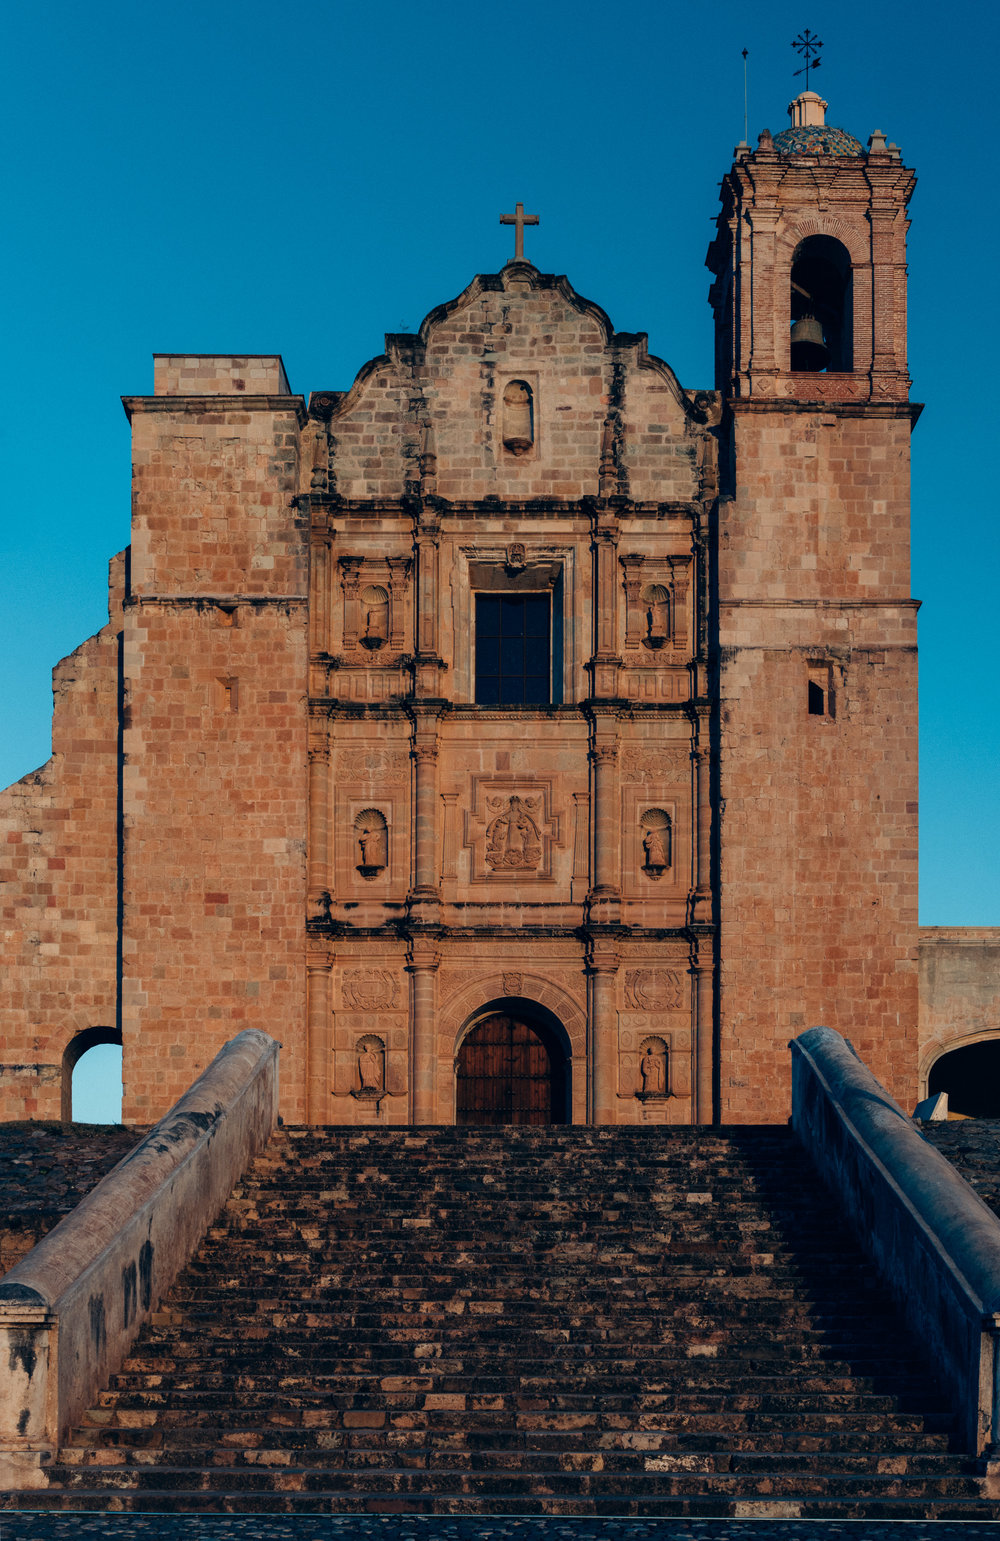 The Templo y Ex-convento de Santo Domingo (Temple and former convent of Saint Dominic), in Yanhuitlan, Oaxaca.